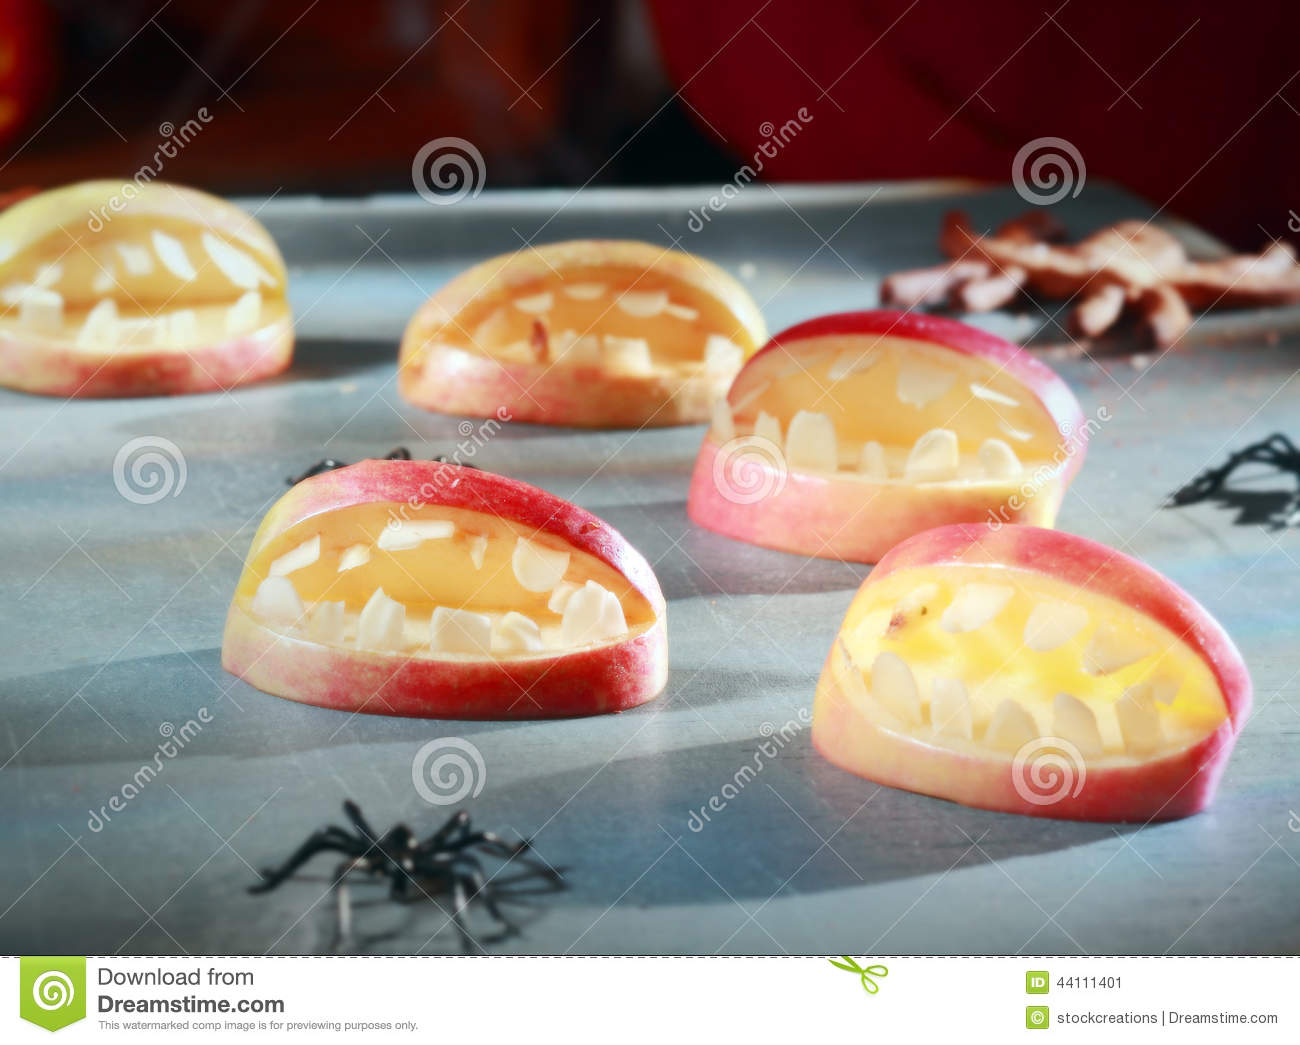 Scary homemade halloween decorations - Scary Halloween Decorations For Favors Stock Photo Image